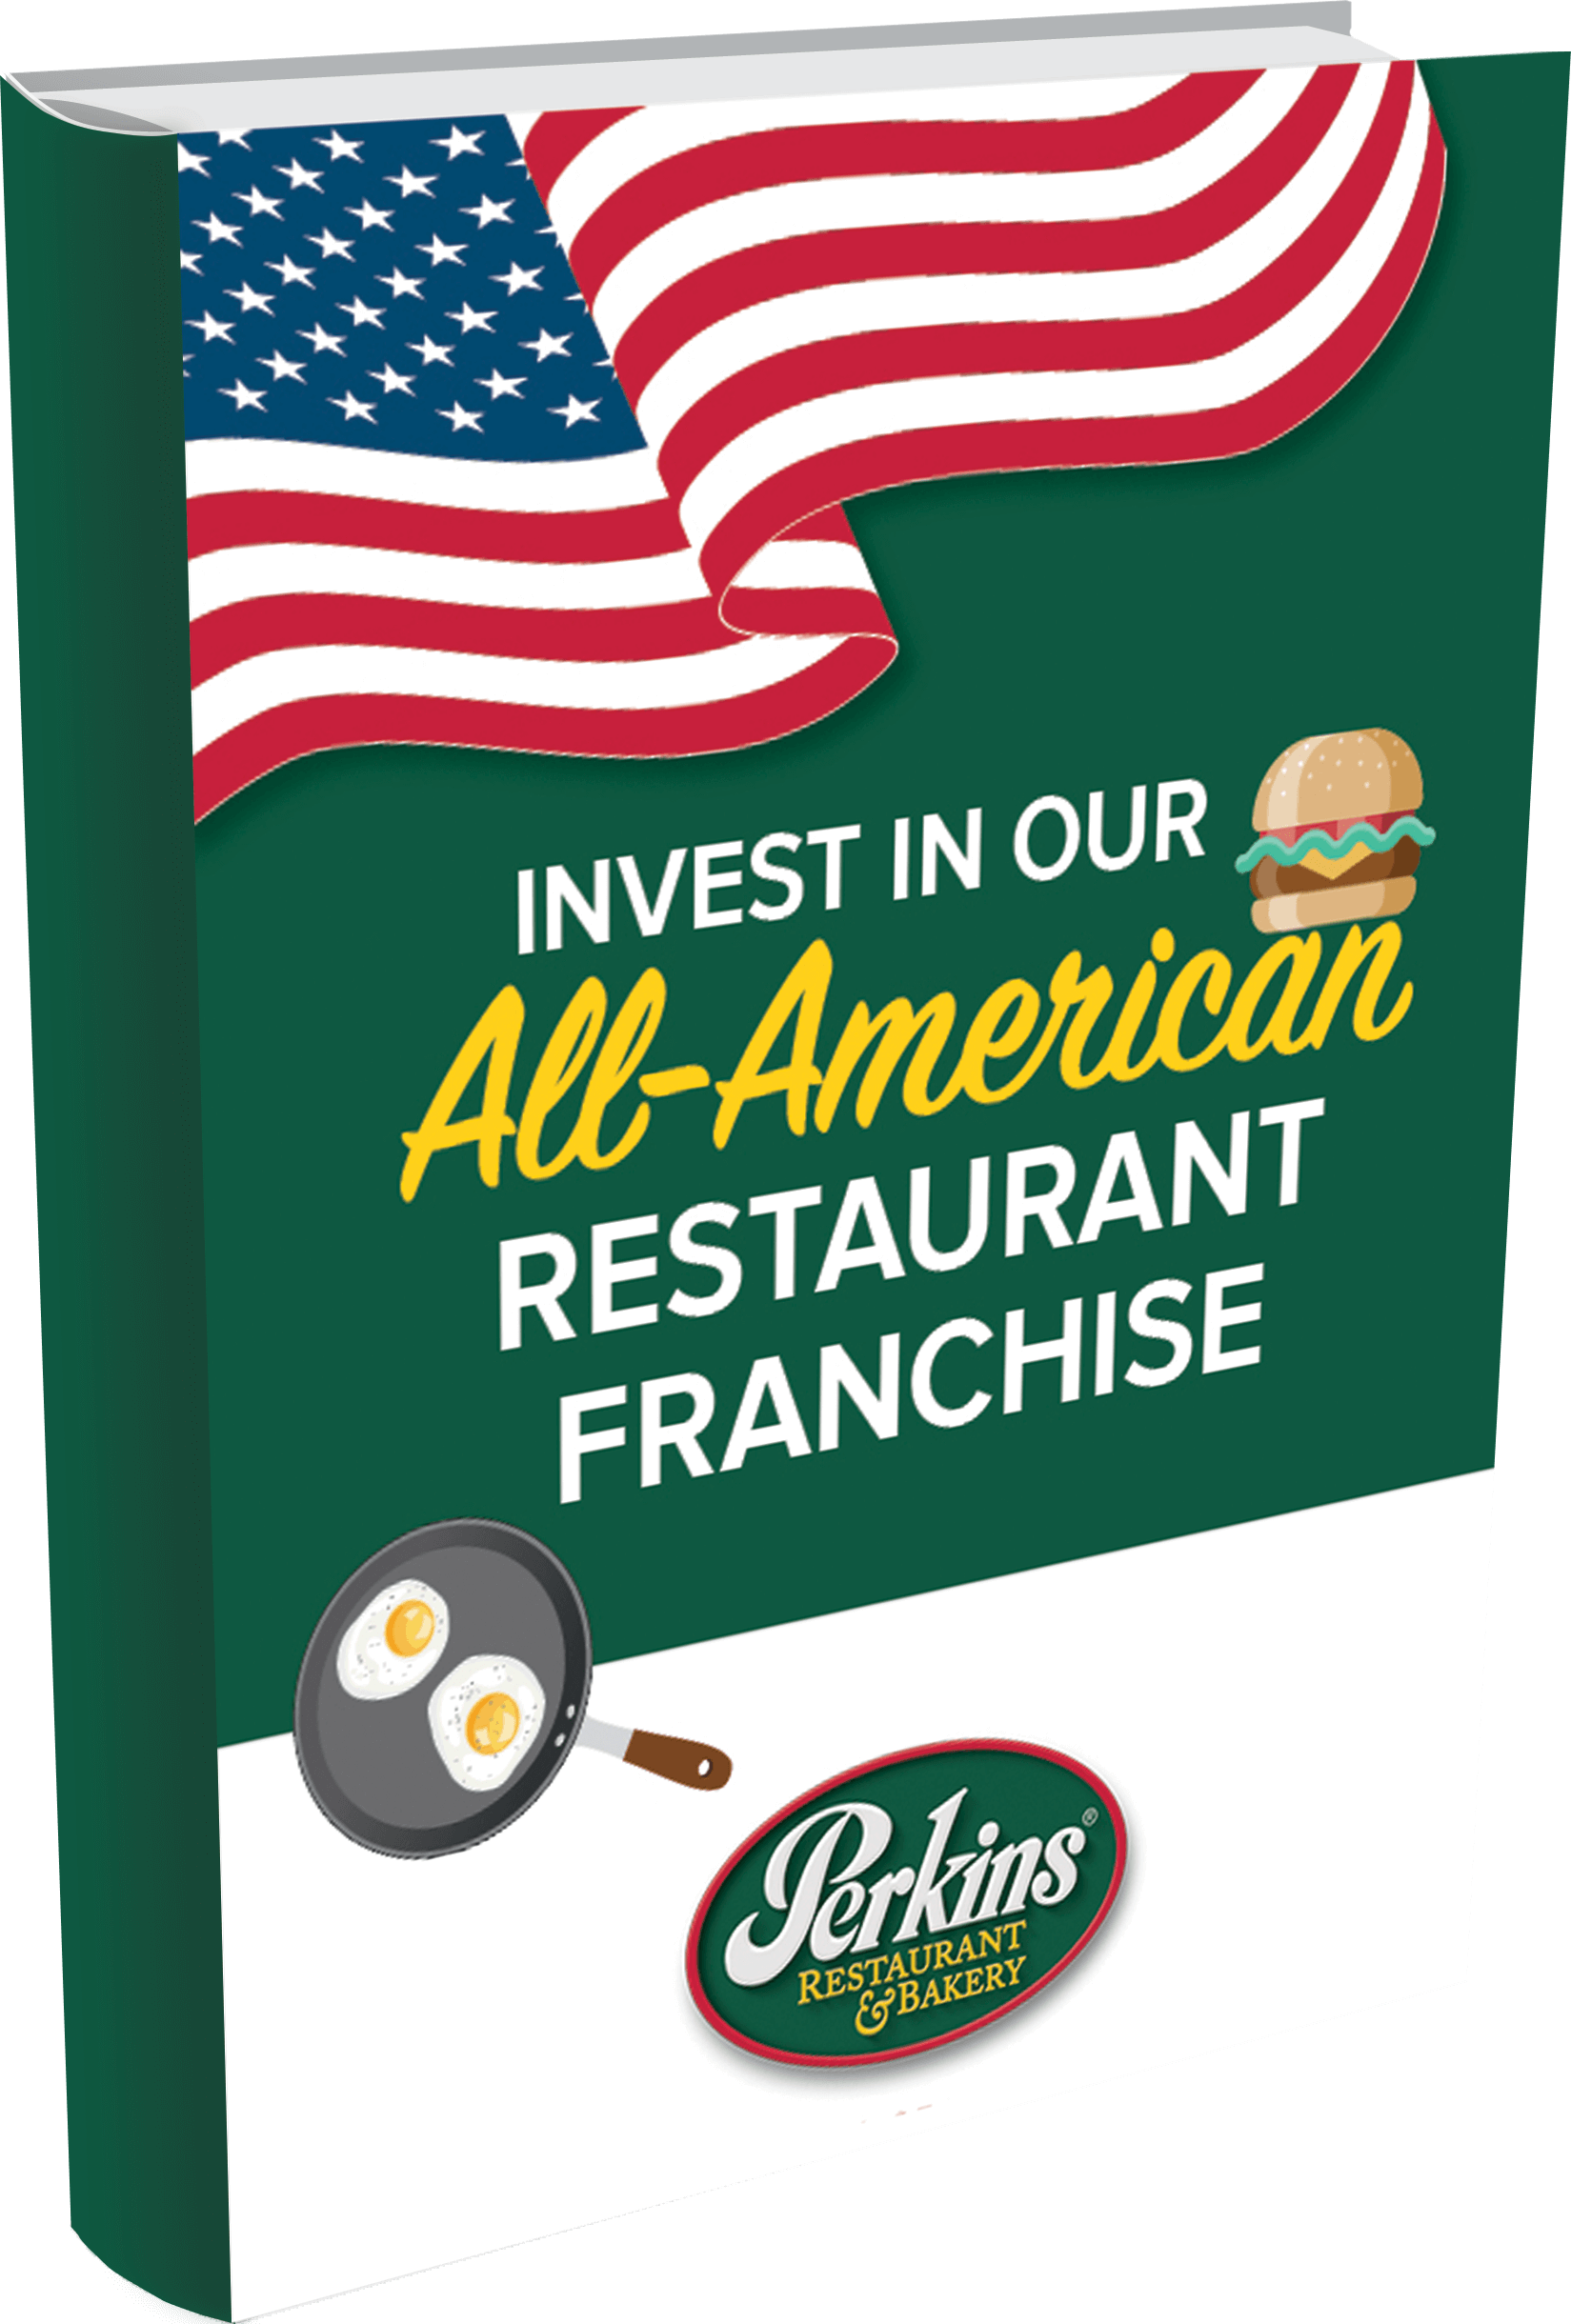 perkins-invest-in-all-american-image